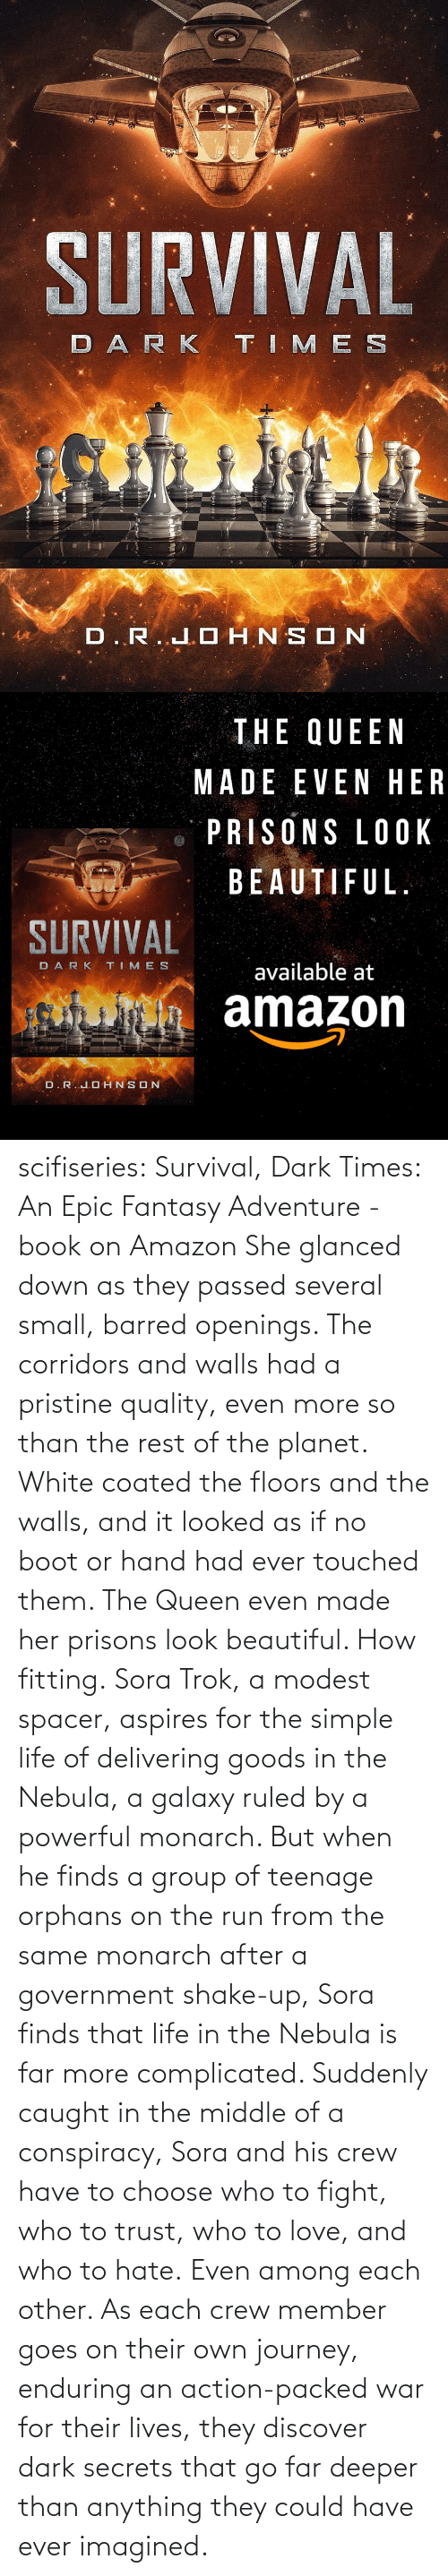 Have To: scifiseries: Survival, Dark Times: An Epic Fantasy Adventure - book on Amazon  She glanced down as they  passed several small, barred openings. The corridors and walls had a  pristine quality, even more so than the rest of the planet. White coated  the floors and the walls, and it looked as if no boot or hand had ever  touched them.  The Queen even made her prisons look beautiful.  How fitting. Sora  Trok, a modest spacer, aspires for the simple life of delivering goods  in the Nebula, a galaxy ruled by a powerful monarch. But when he finds a  group of teenage orphans on the run from the same monarch after a  government shake-up, Sora finds that life in the Nebula is far more complicated.  Suddenly  caught in the middle of a conspiracy, Sora and his crew have to choose  who to fight, who to trust, who to love, and who to hate. Even among each other.  As  each crew member goes on their own journey, enduring an action-packed  war for their lives, they discover dark secrets that go far deeper than  anything they could have ever imagined.